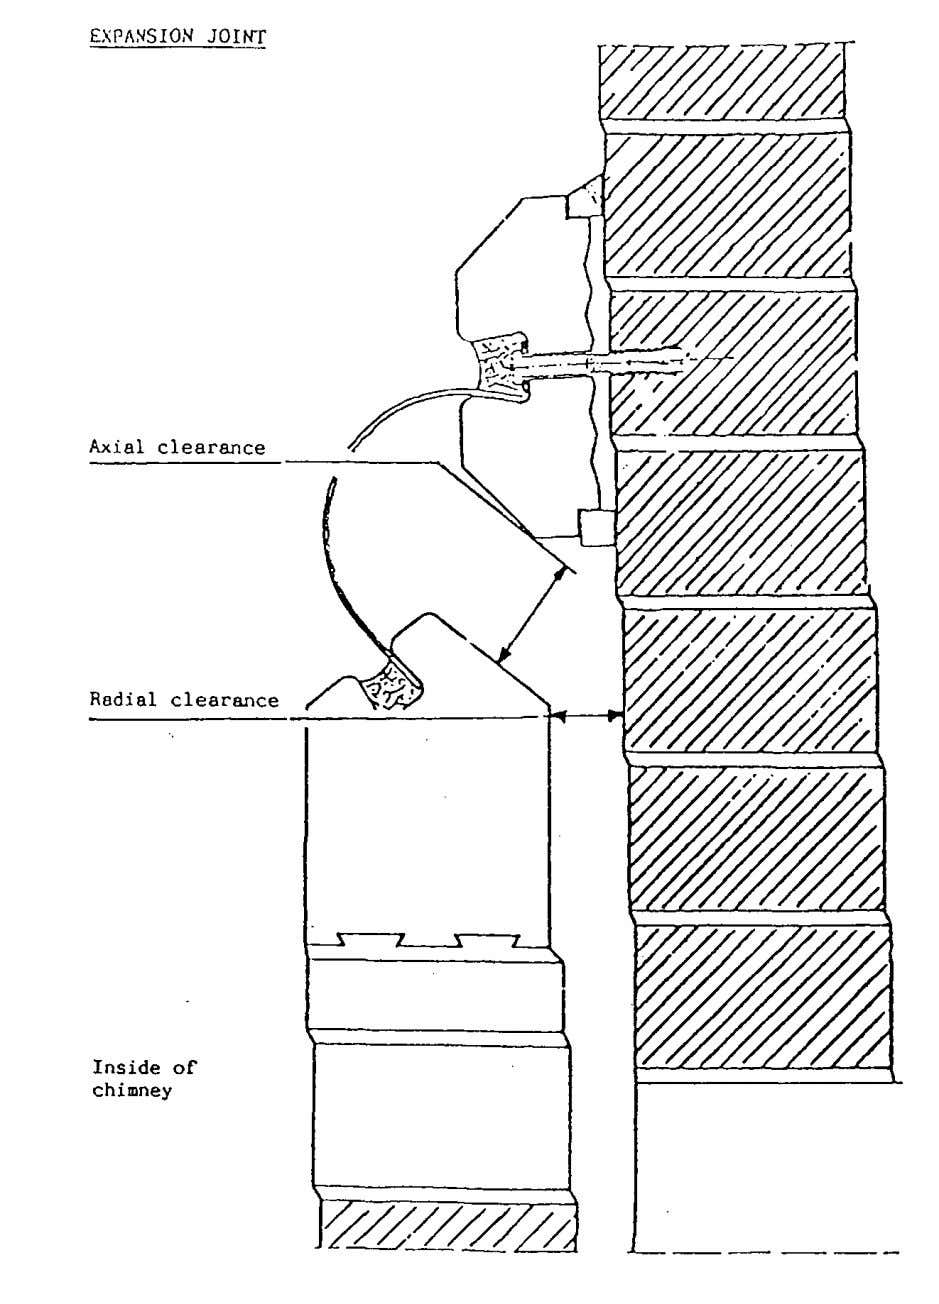 CICIND Manual for Inspection and Maintenance of Brickwork and Concrete Chimneys page 89 Figure annex 9-2